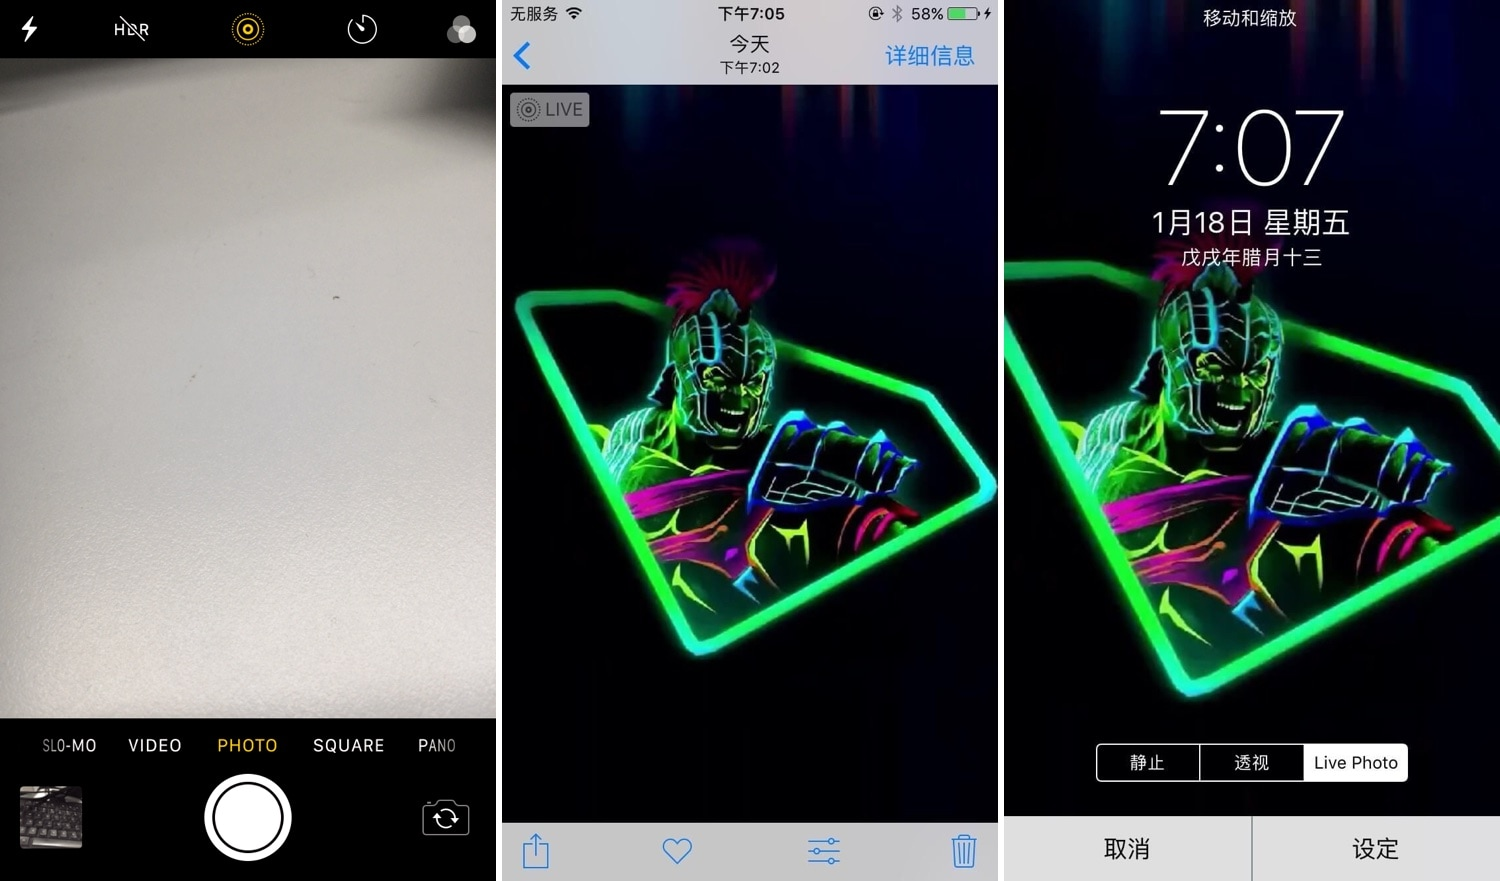 This Tweak Enables All Live Photos Centric Features On